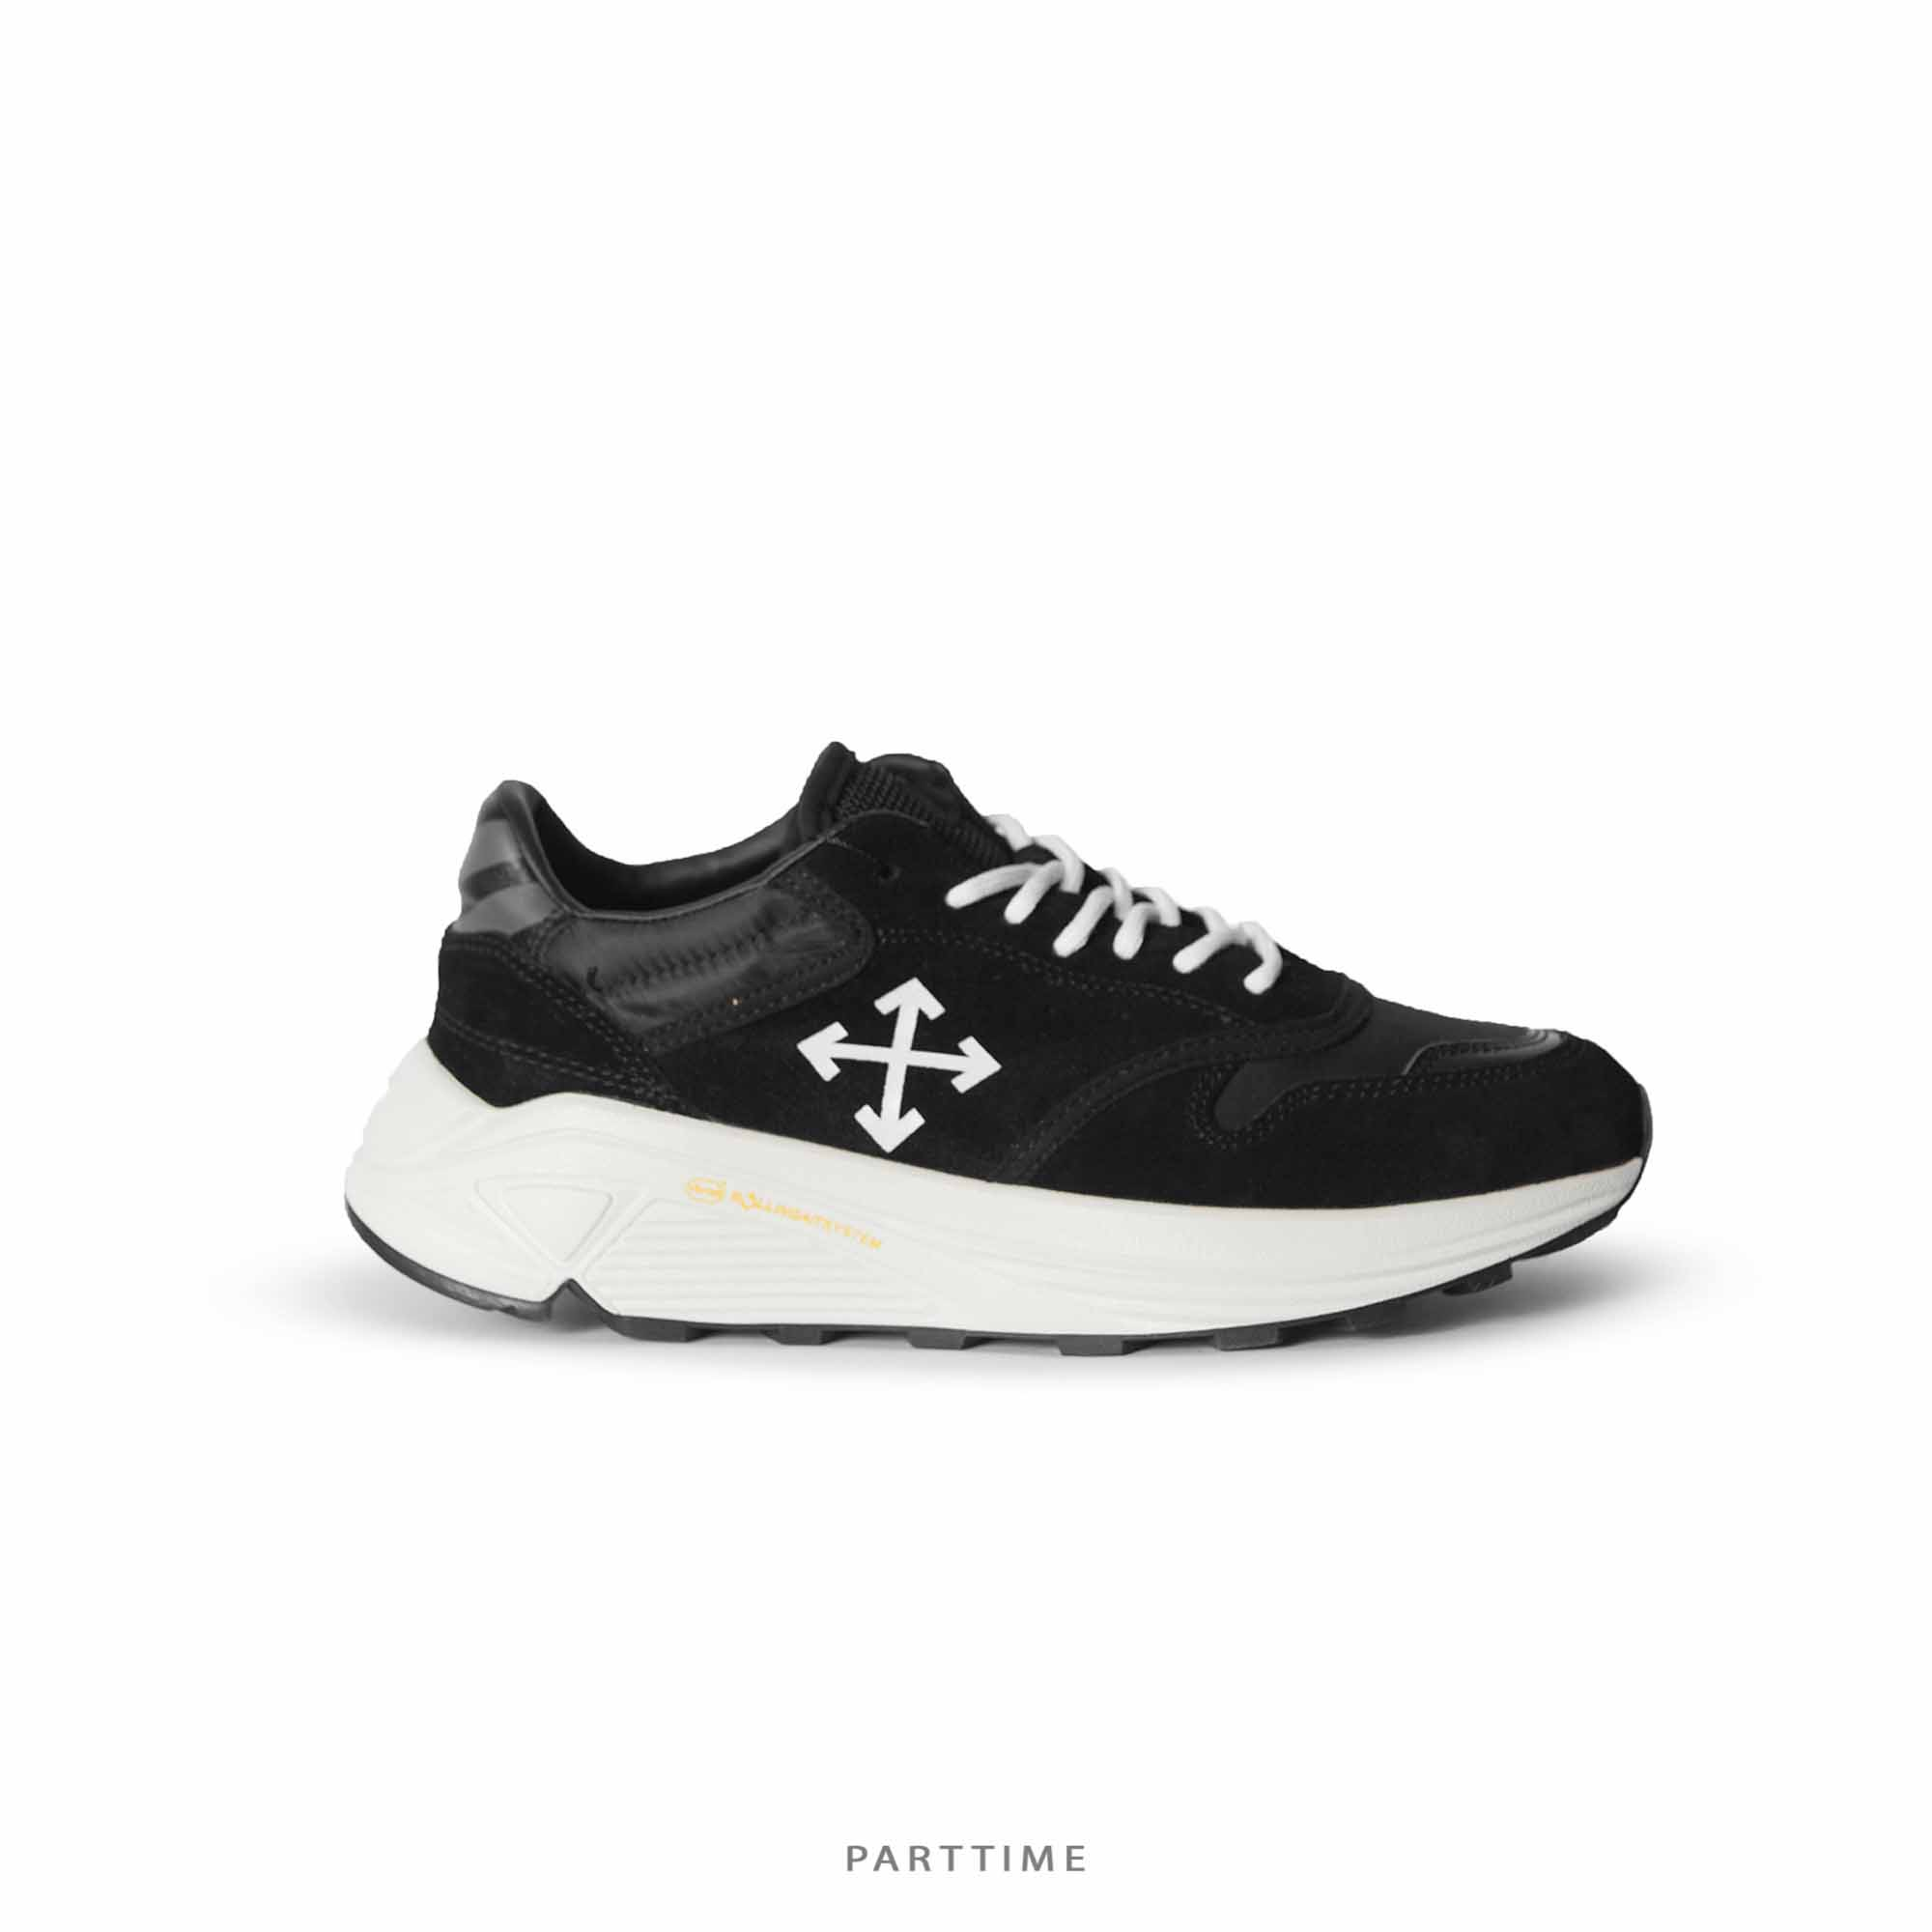 OW Jogger Shoes Black/White - 42